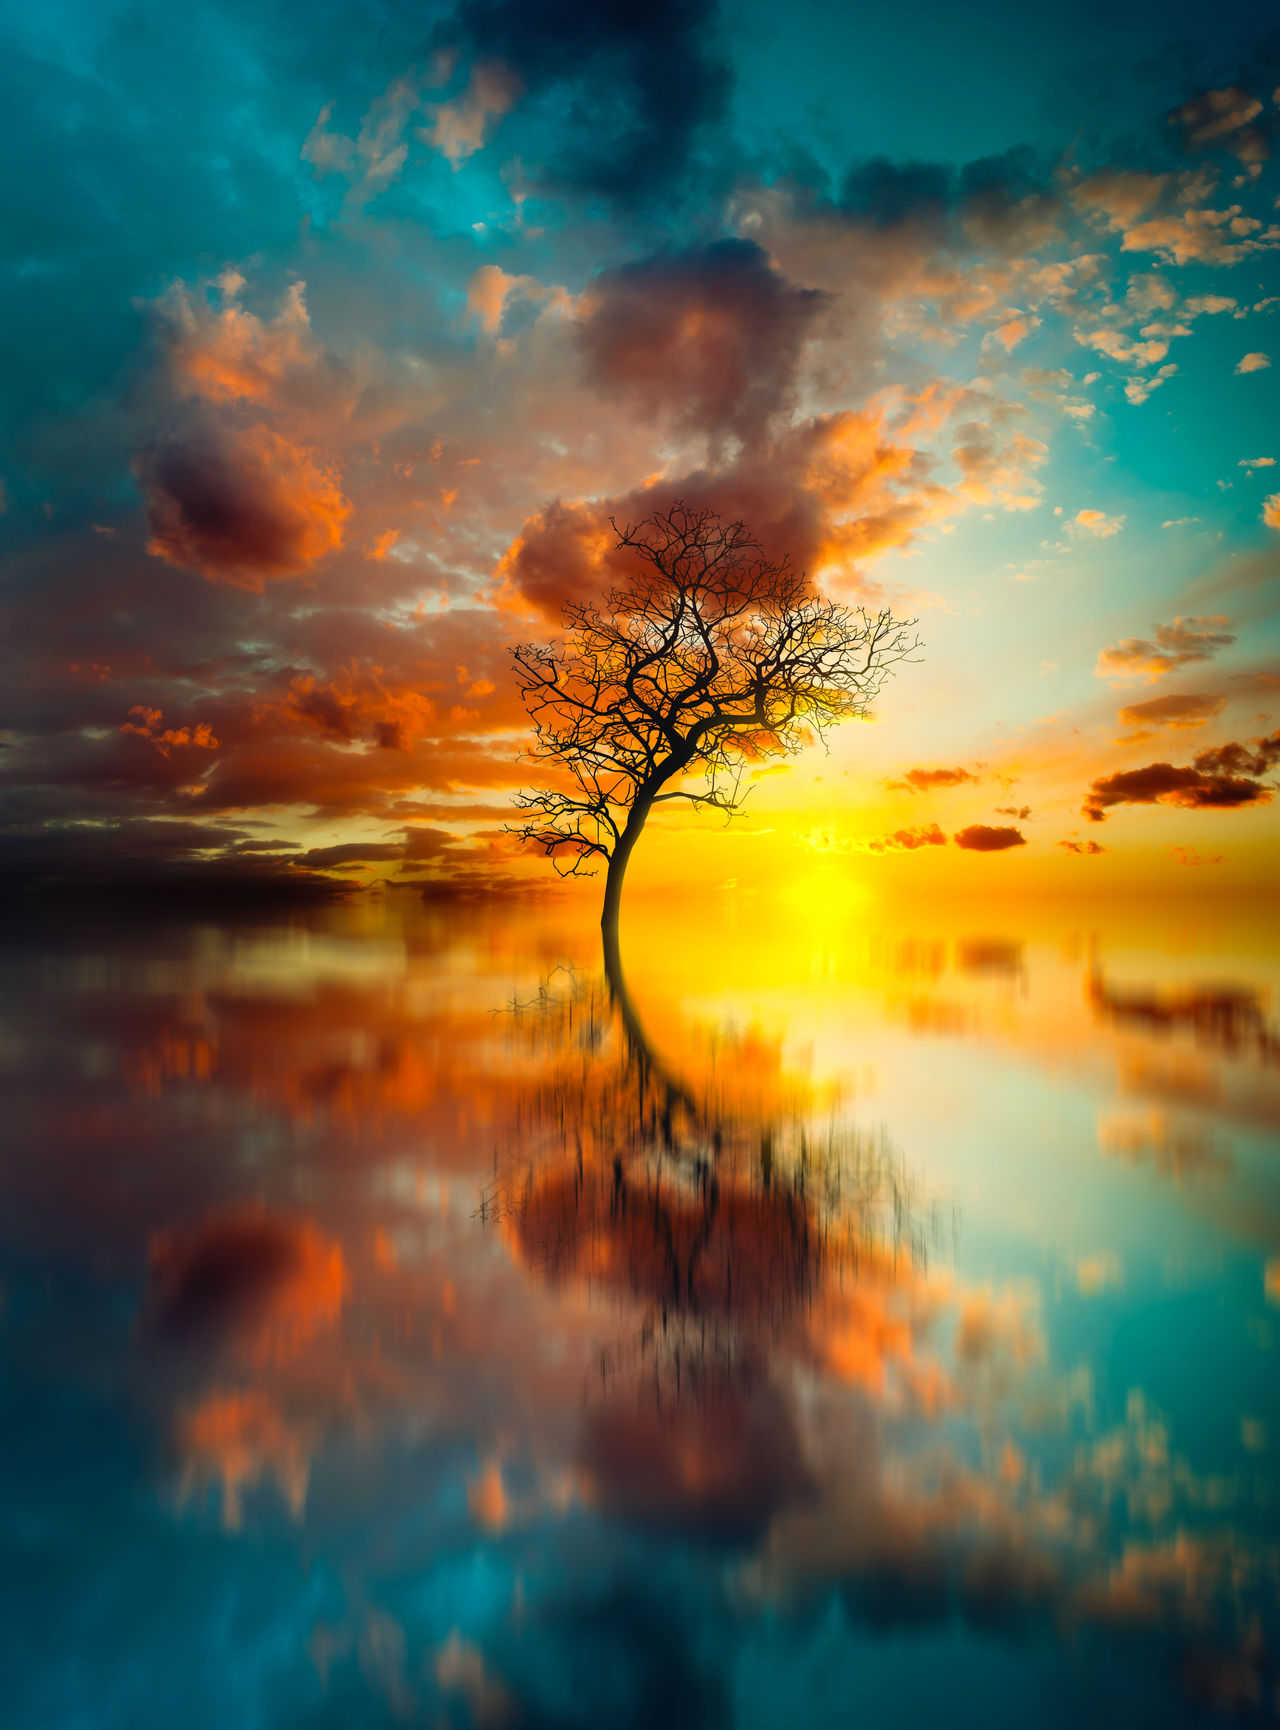 Beauty In Nature Close-up Cloud - Sky Dramatic Sky Furstset Landscape Nature Nature No People Outdoors Reflection Reflection Scenics Sea Silhouette Sky Succes Success Successful Sunset Tree Tree Water Water Reflections Wilderness